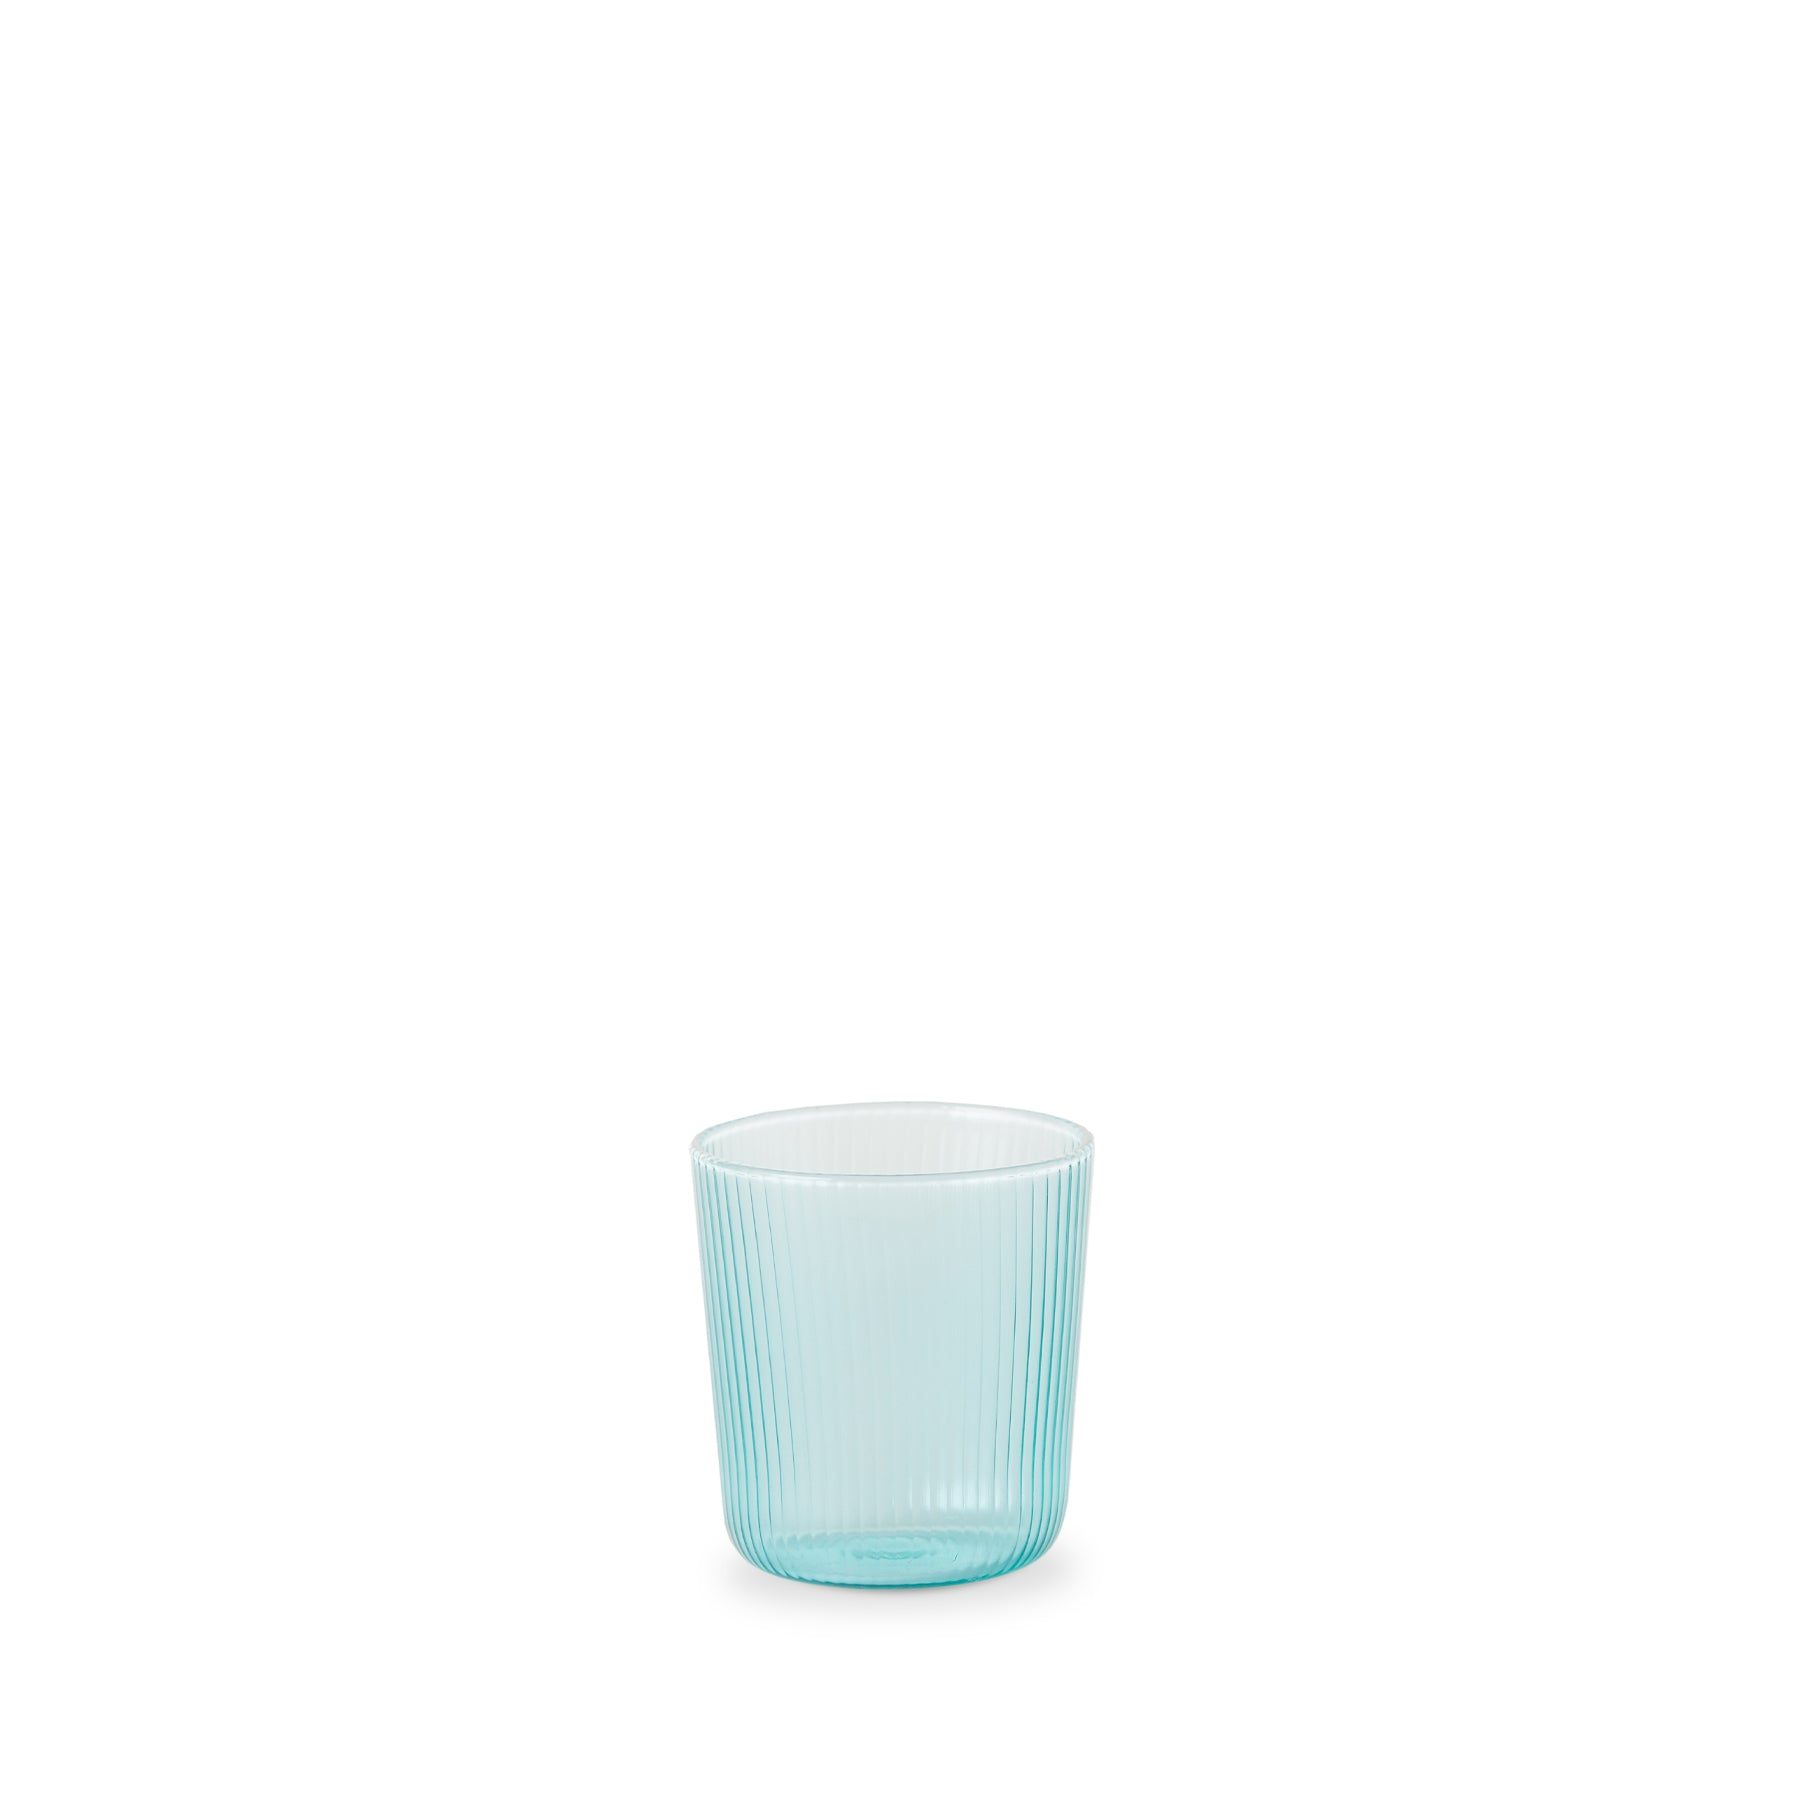 Luisa Vino Glass in Calamine Blue (Set of 2) Zoom Image 1